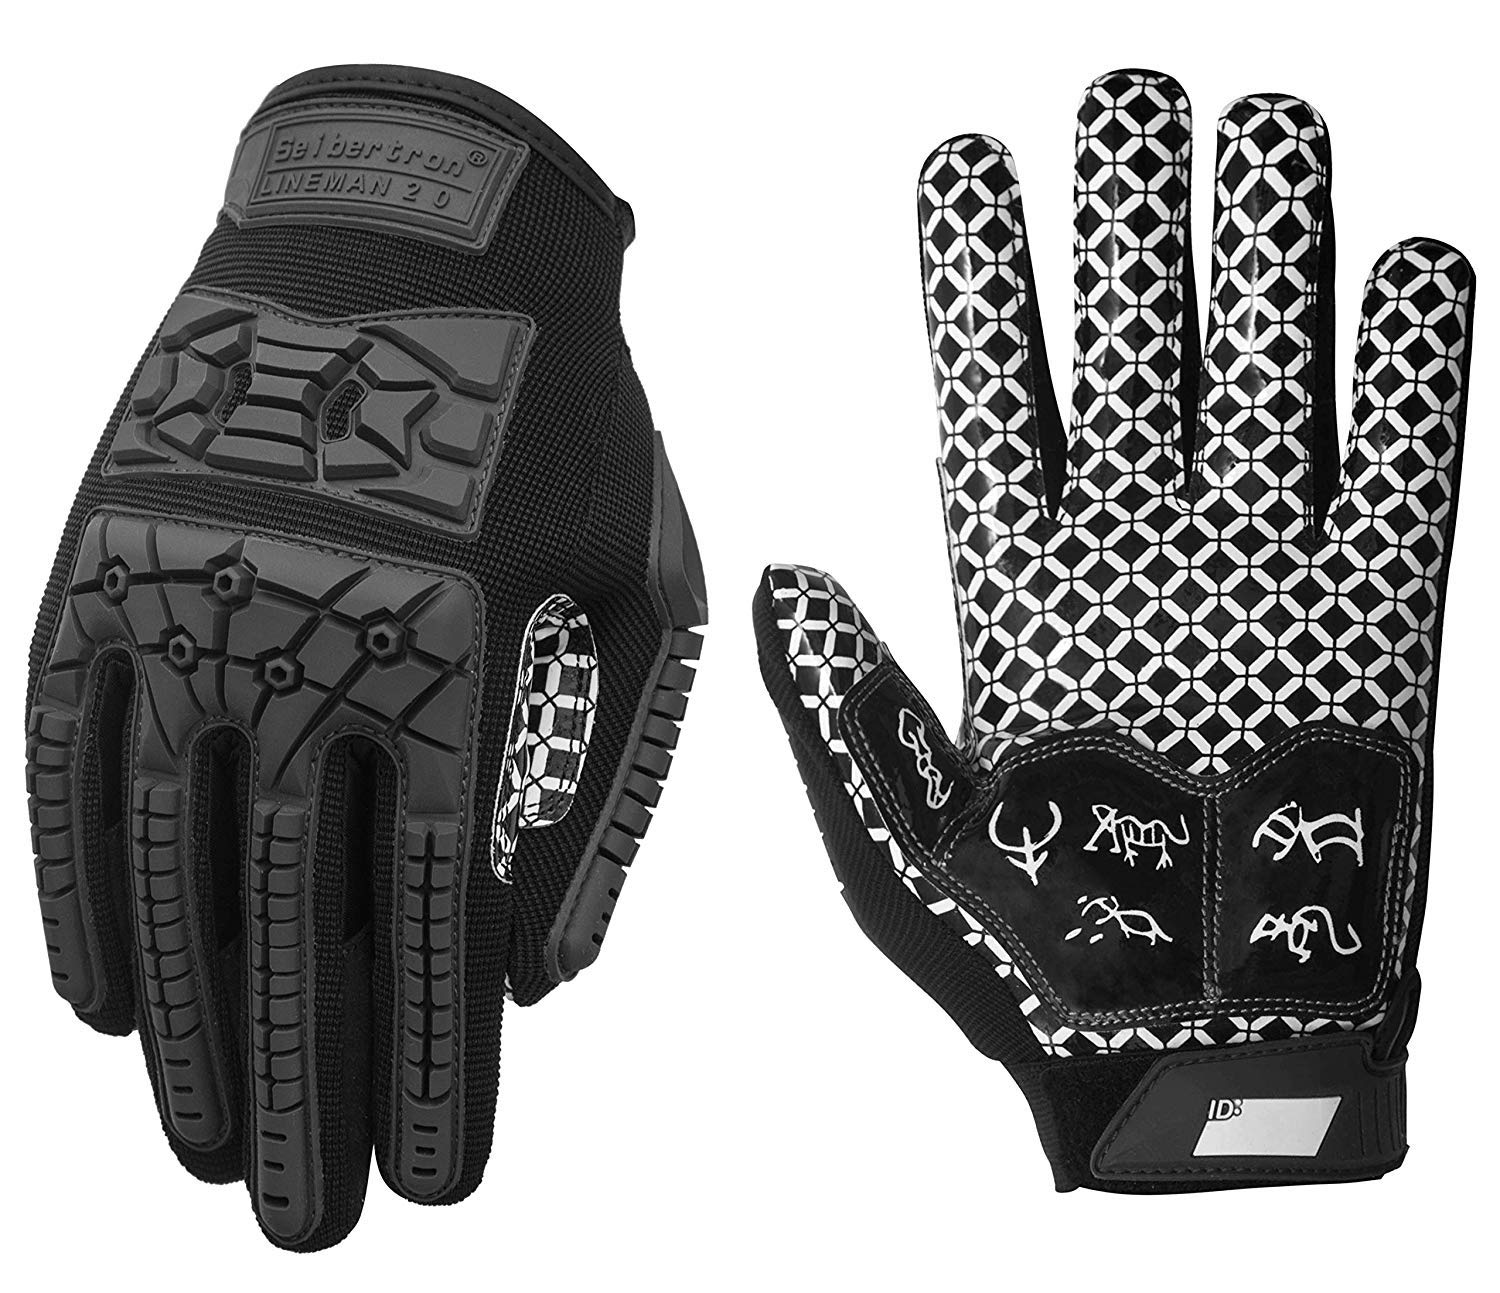 Flexible TPR Impact Protection Back of Hand Glove Adult Sizes Black XL Seibertron Lineman 2.0 Padded Palm Football Receiver Gloves